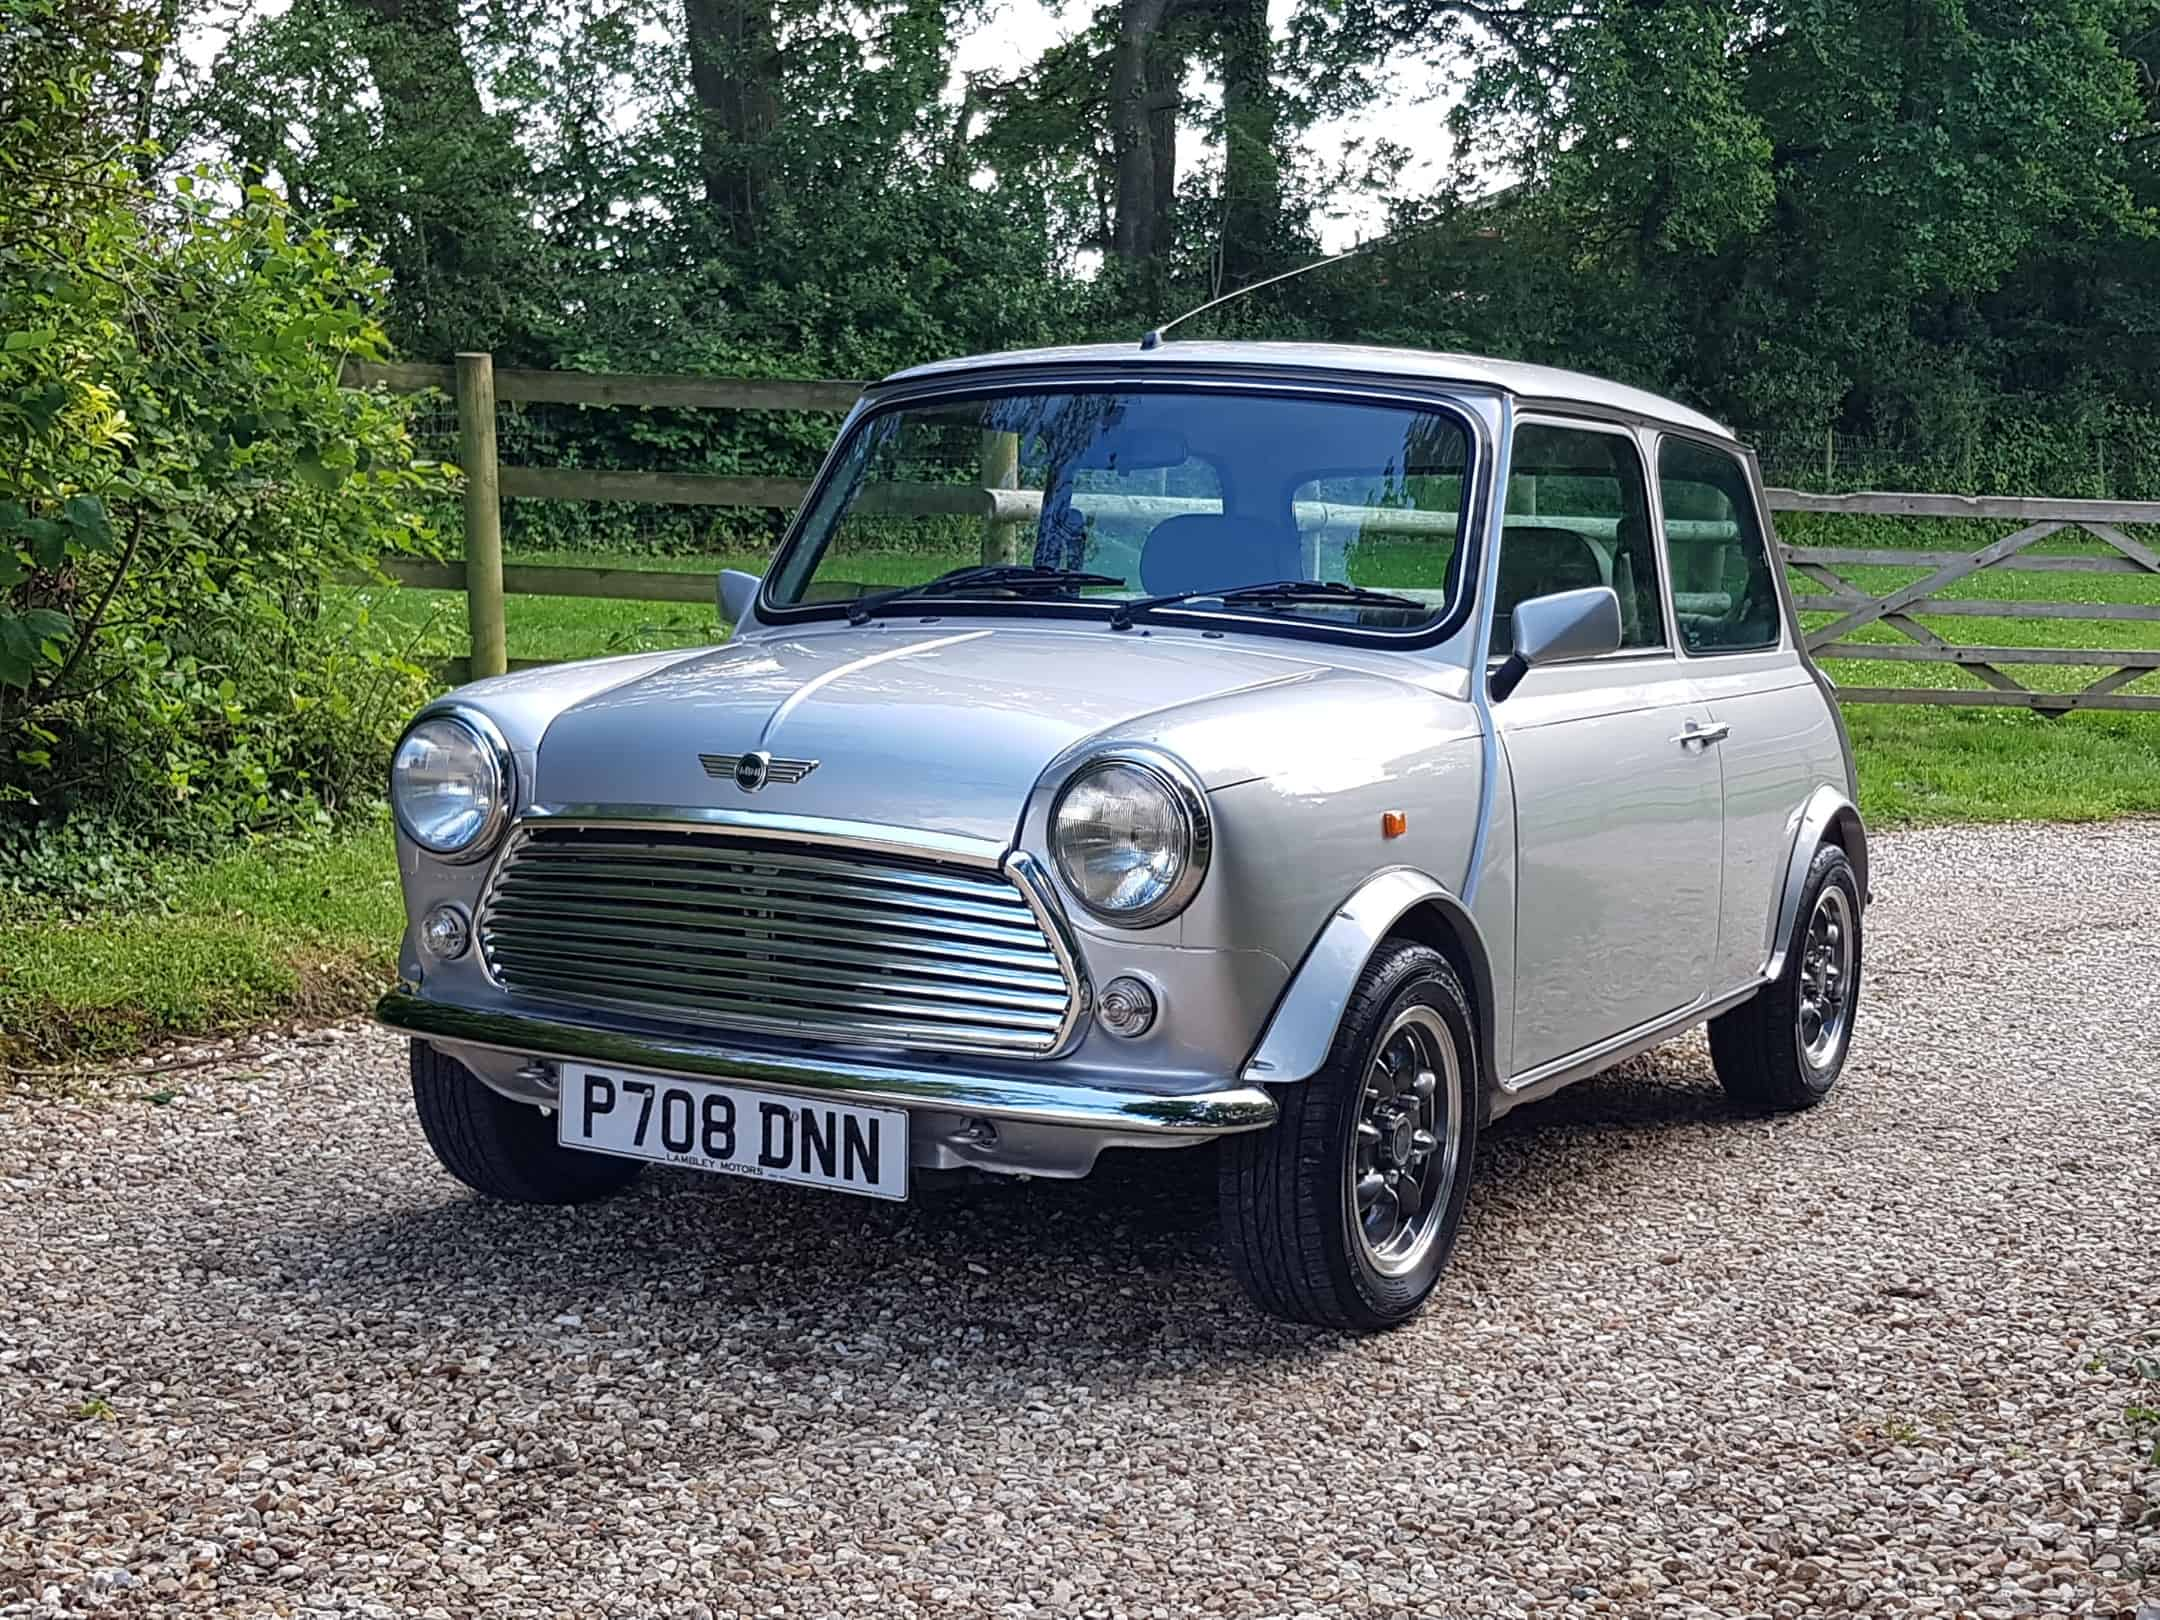 ** NOW SOLD ** 1997 Rover Mini 1.3 MPI On Just 27600 Miles From New!